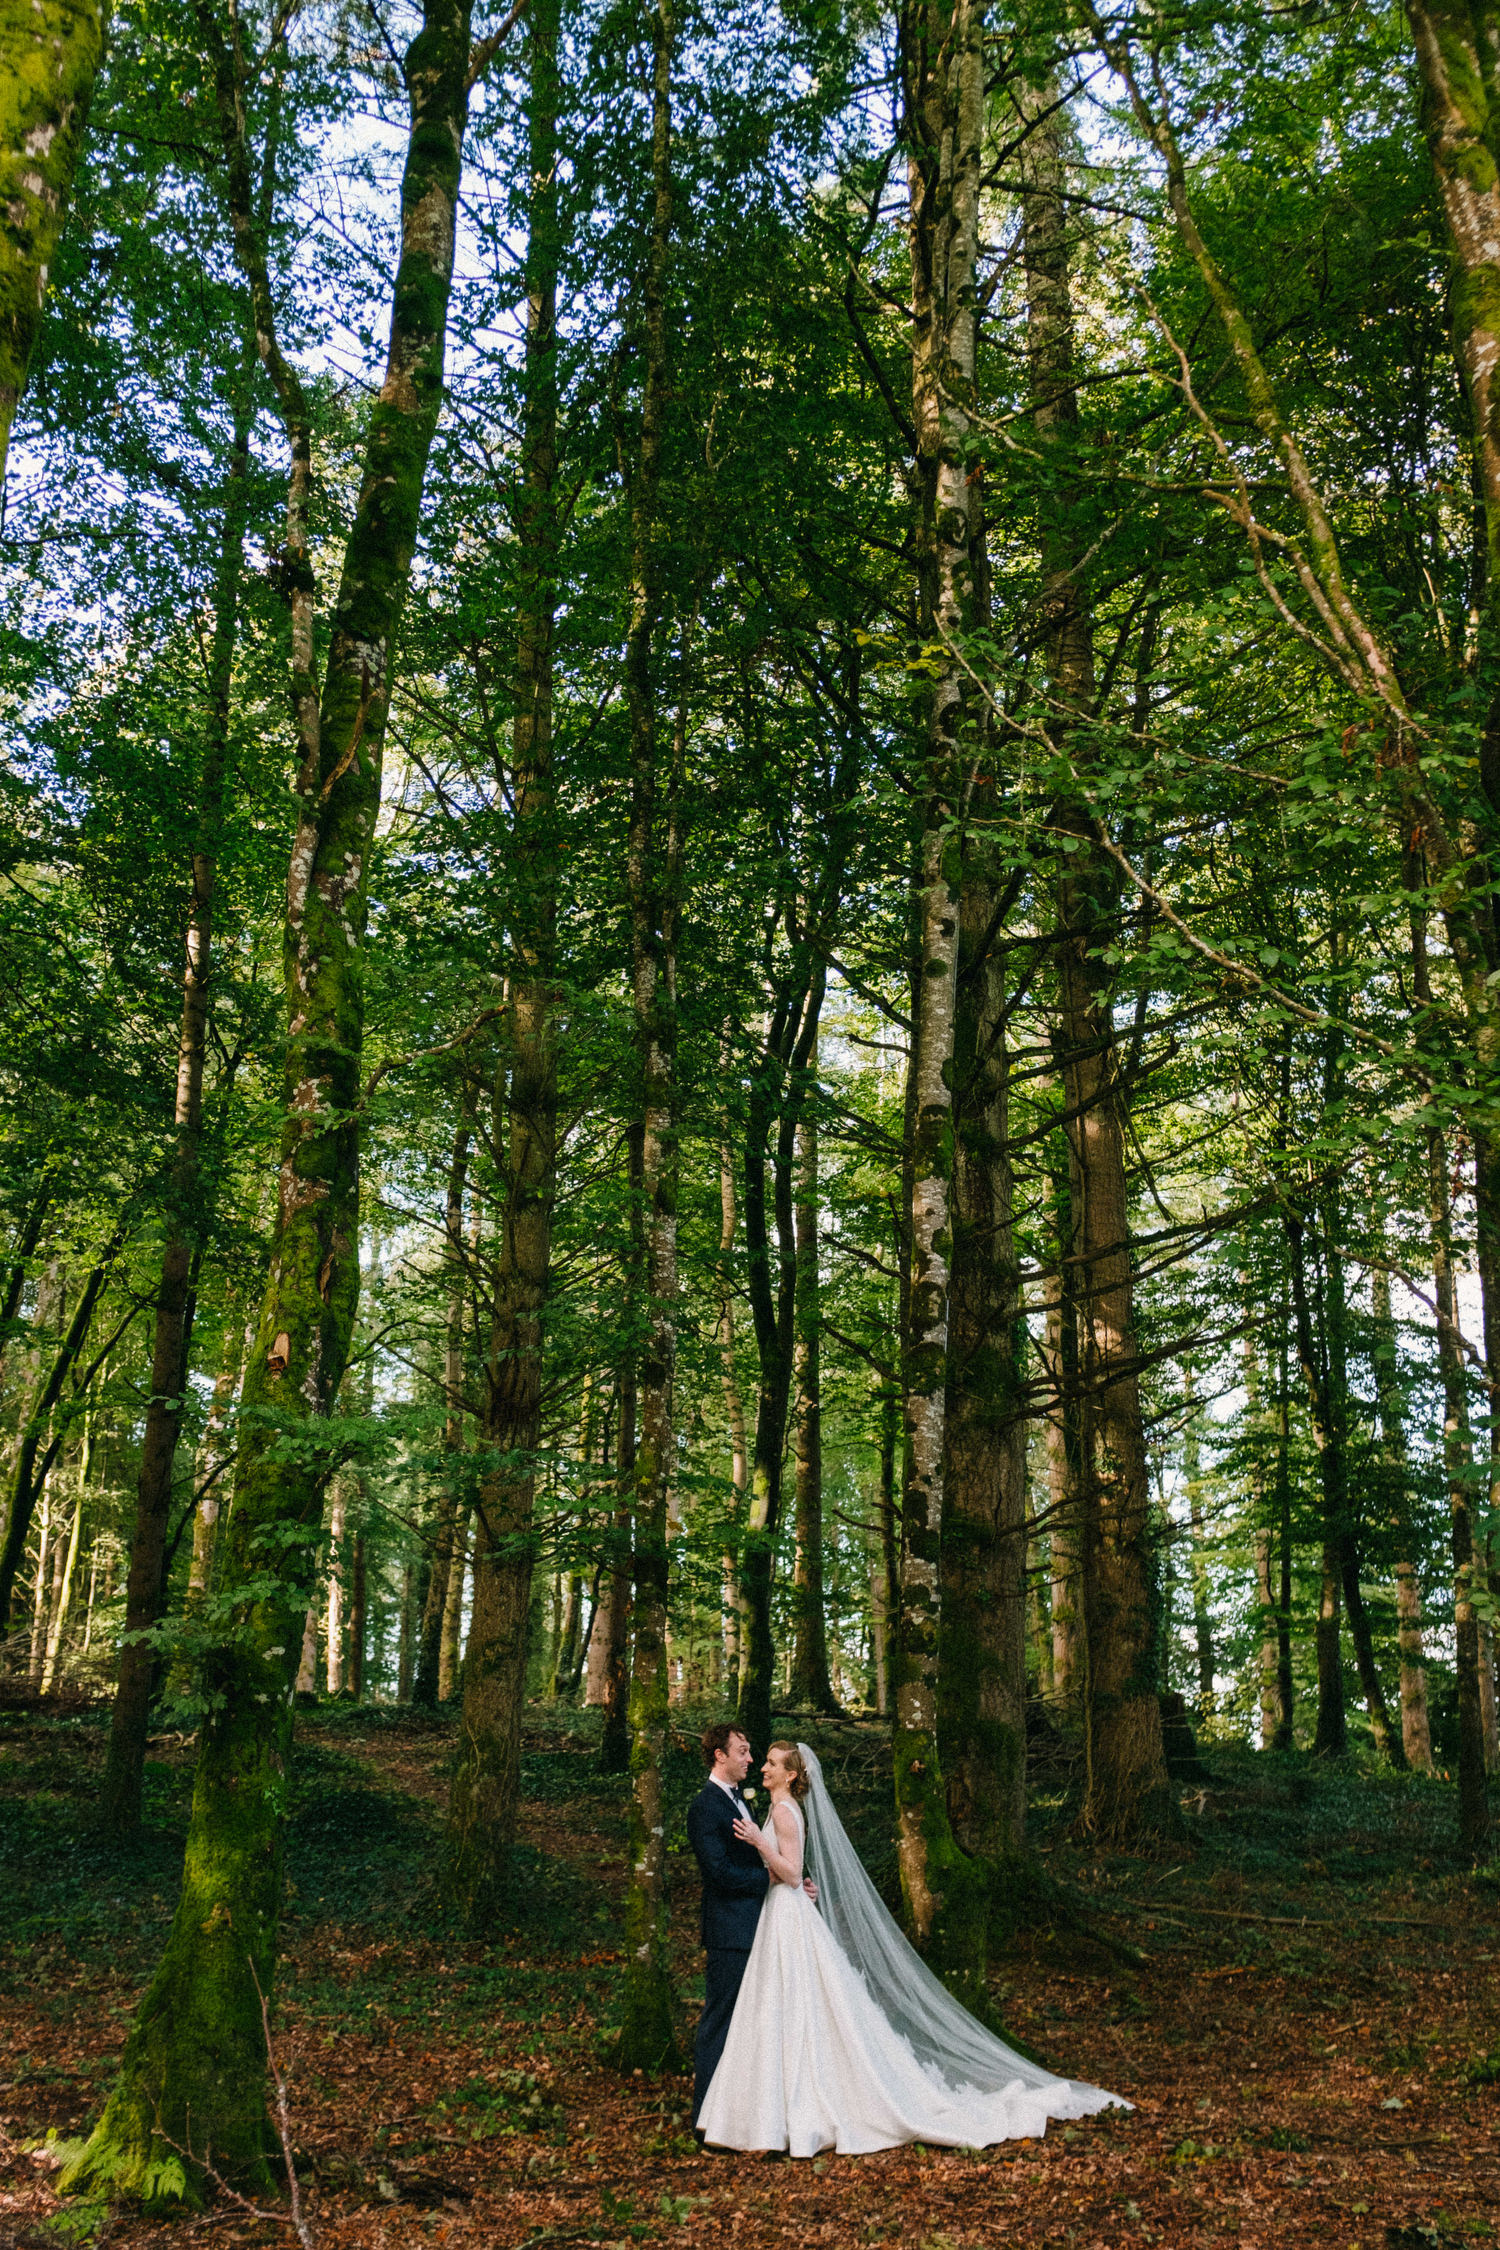 000000000000000000000152_bride_style_vintage_photography_david_mcclelland_ireland_castle_hollywood_kinnity_wedding_photographer_fujifilm